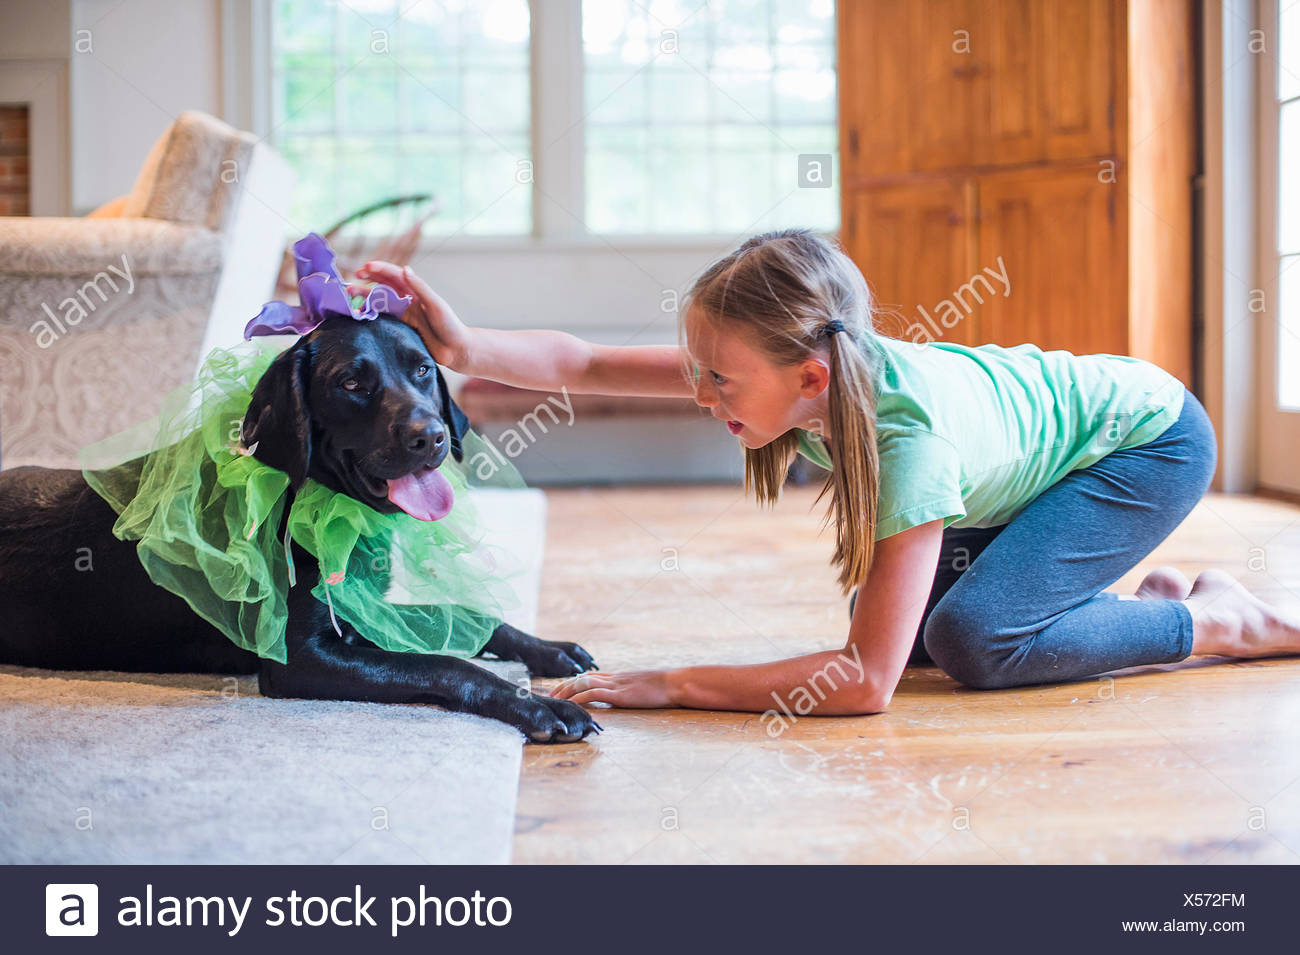 Young girl playing dress up with pet dog Stock Photo